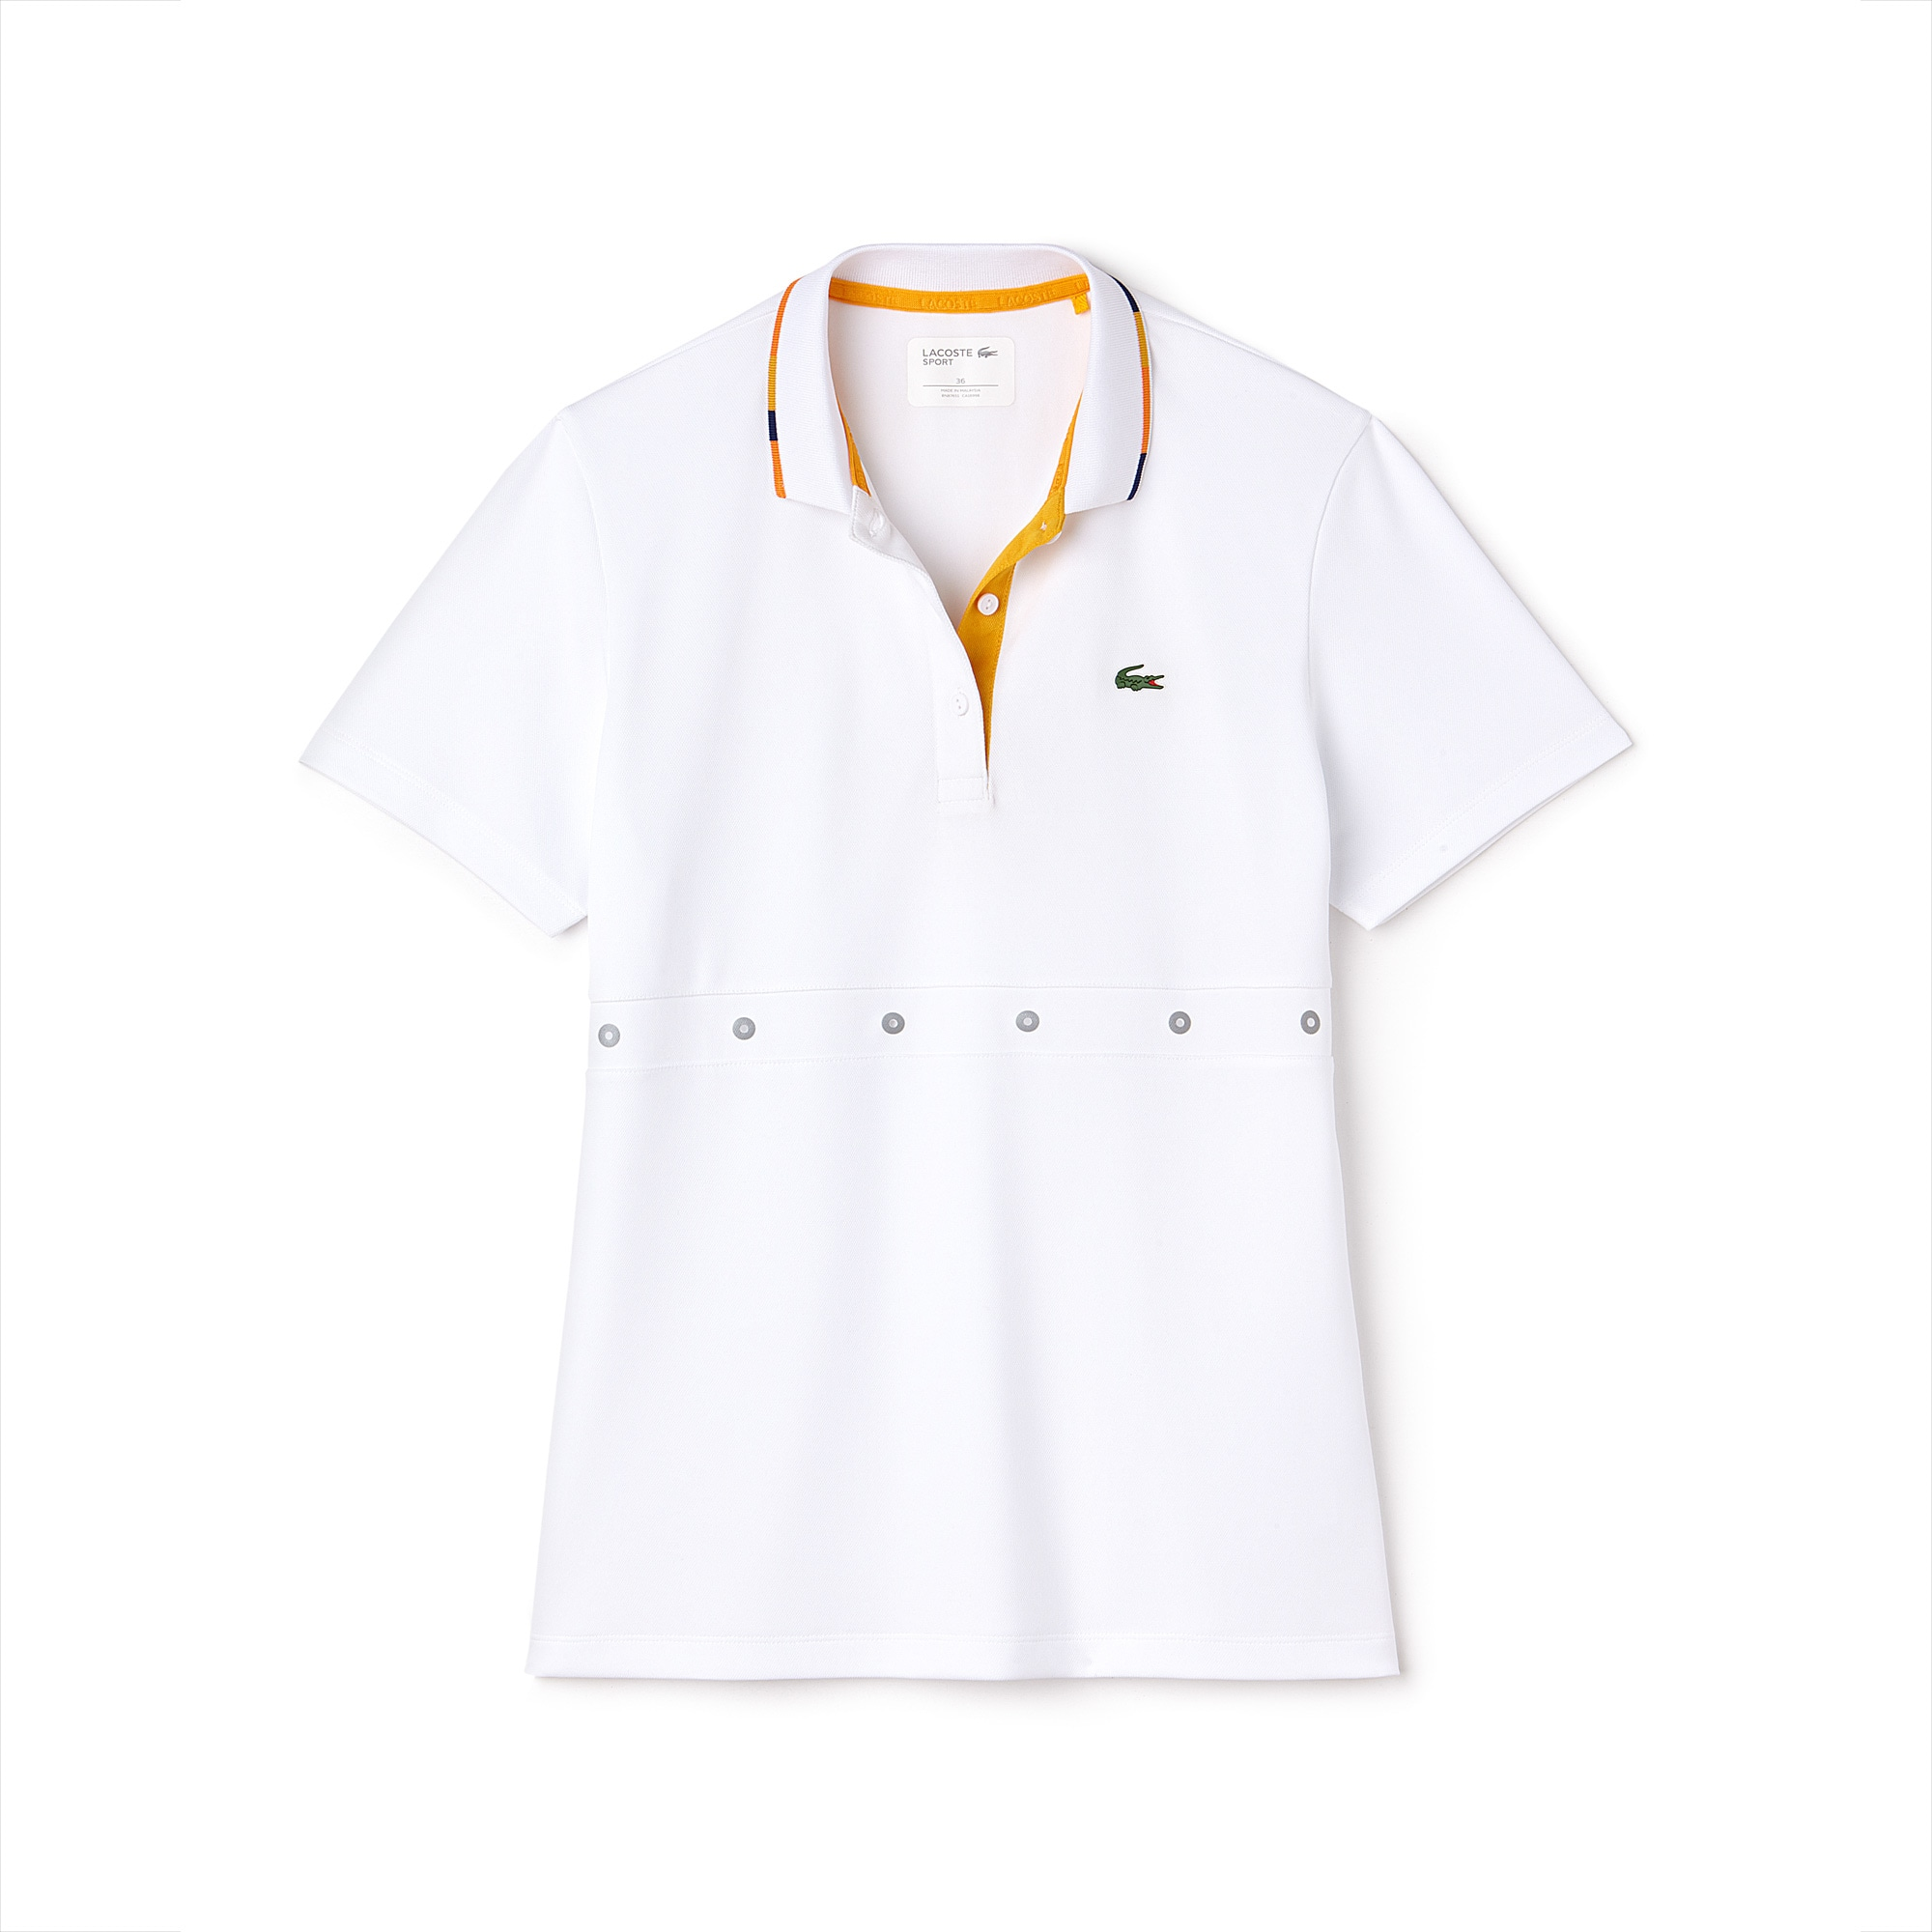 Women's Lacoste SPORT Contrast Collar Tech Piqué Tennis Polo Shirt